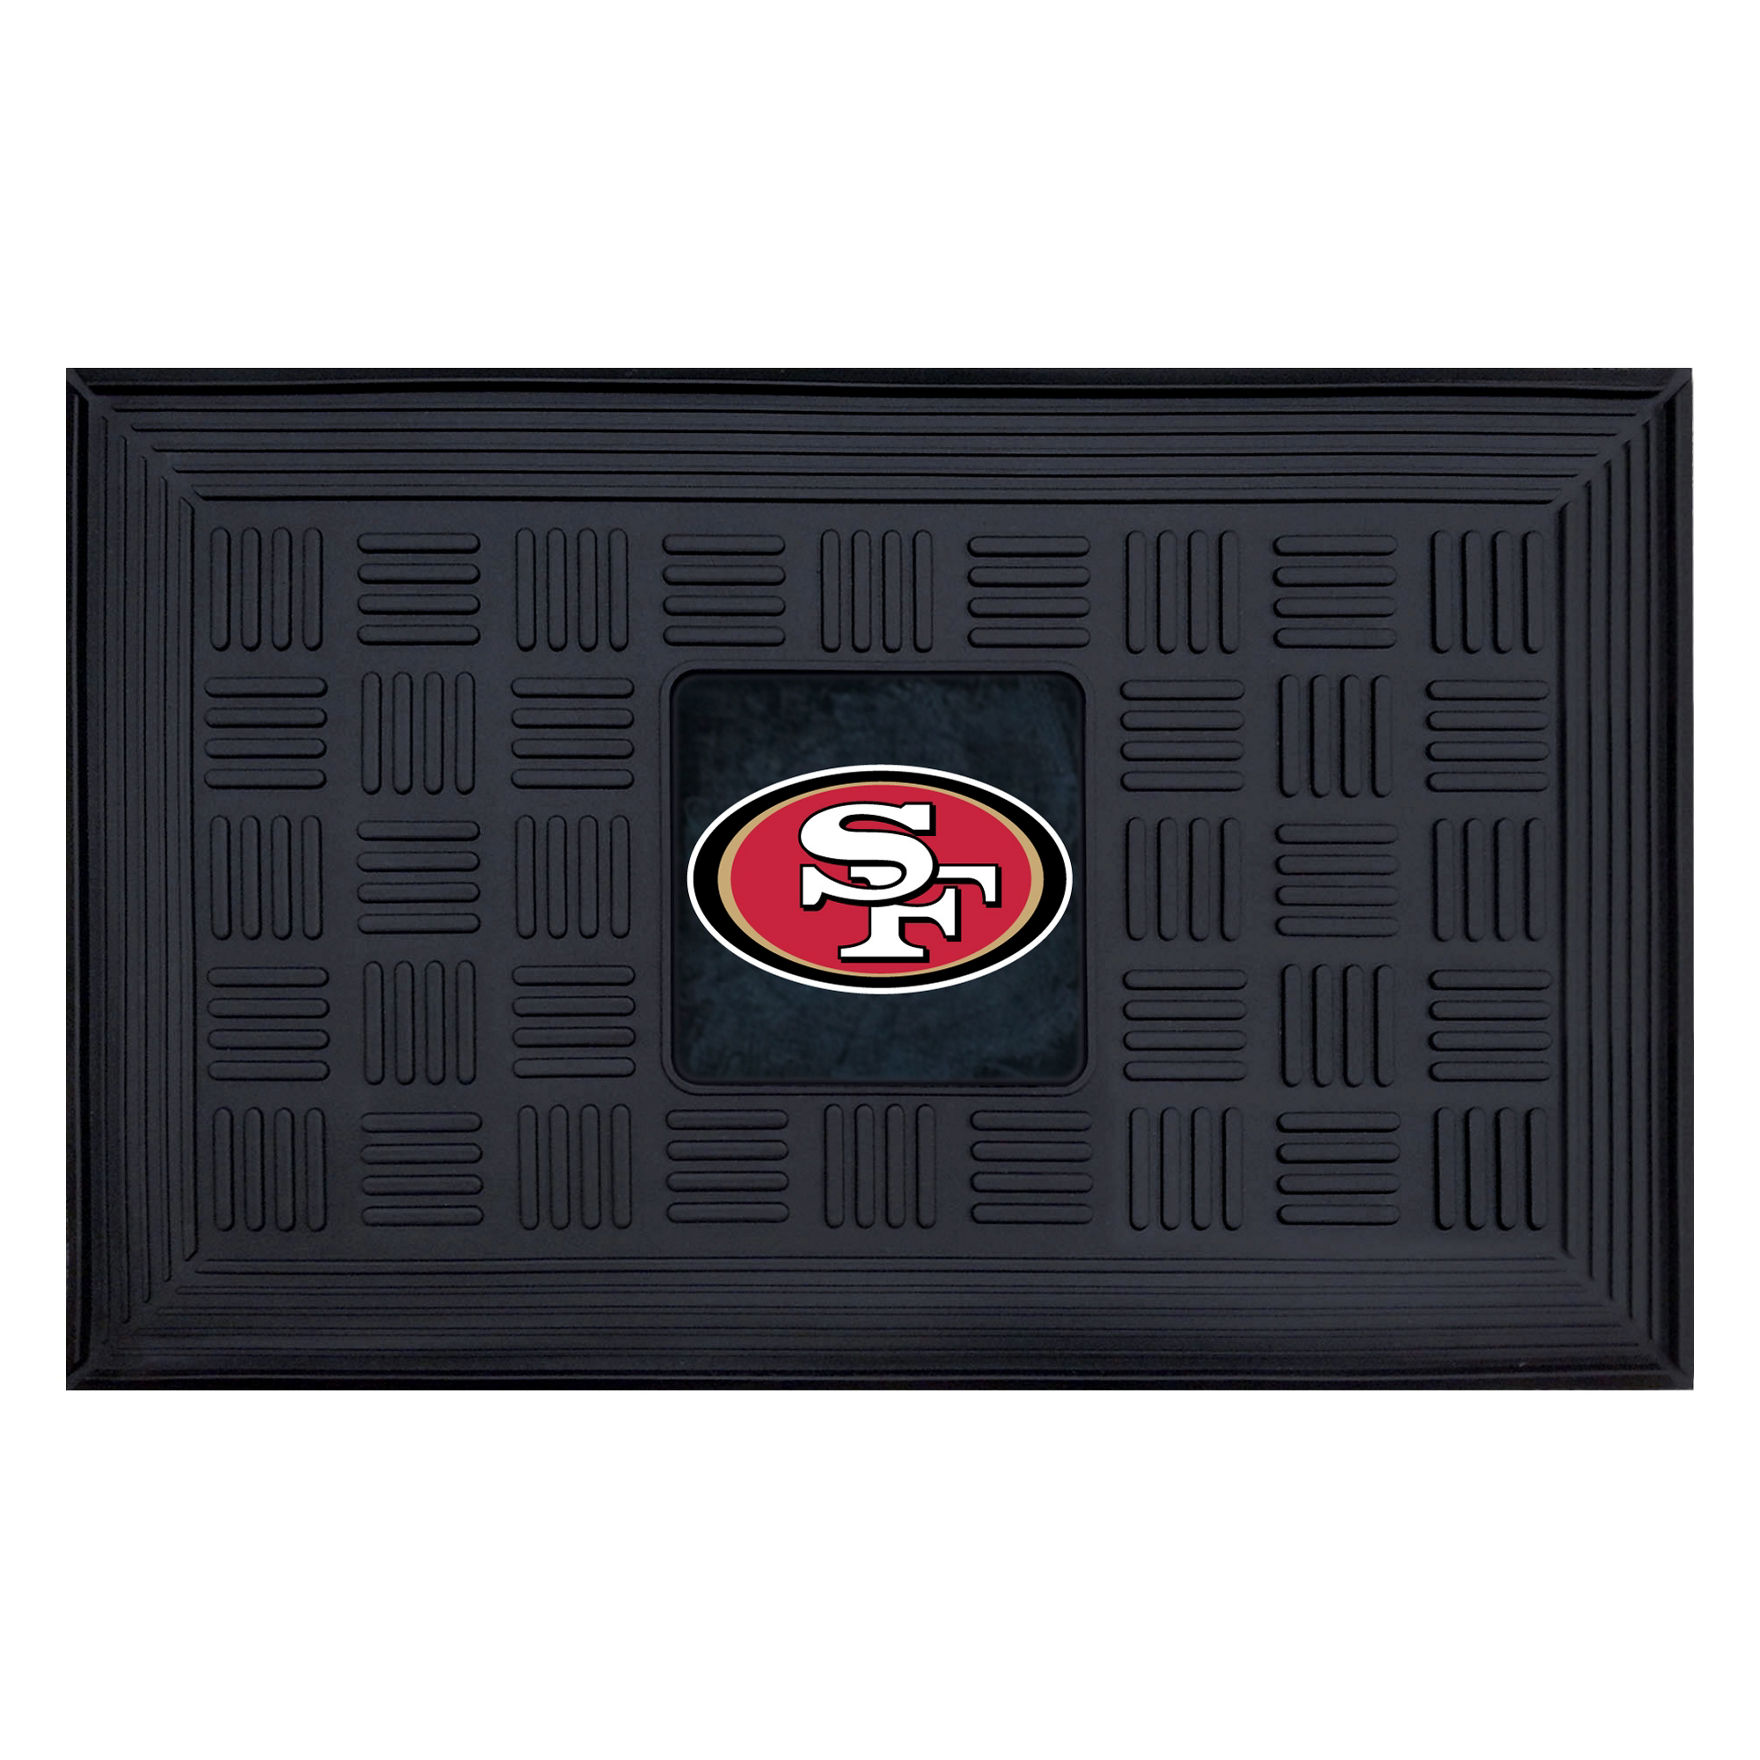 Fanmats Black Outdoor Rugs & Doormats NFL Outdoor Decor Rugs